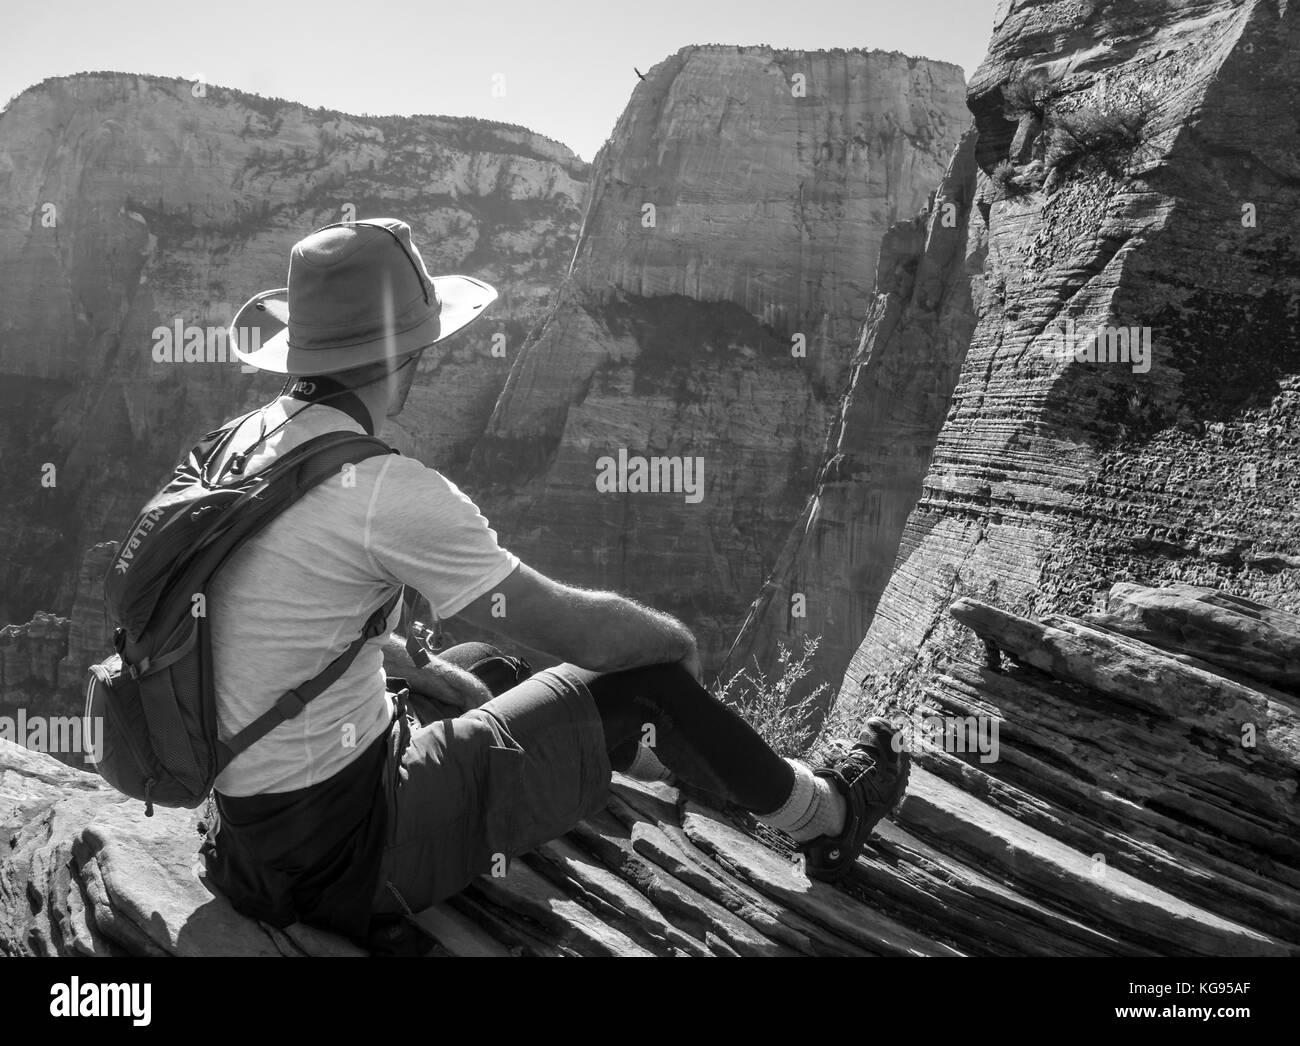 Guy Backpacking in Grand Canyon Stock Photo